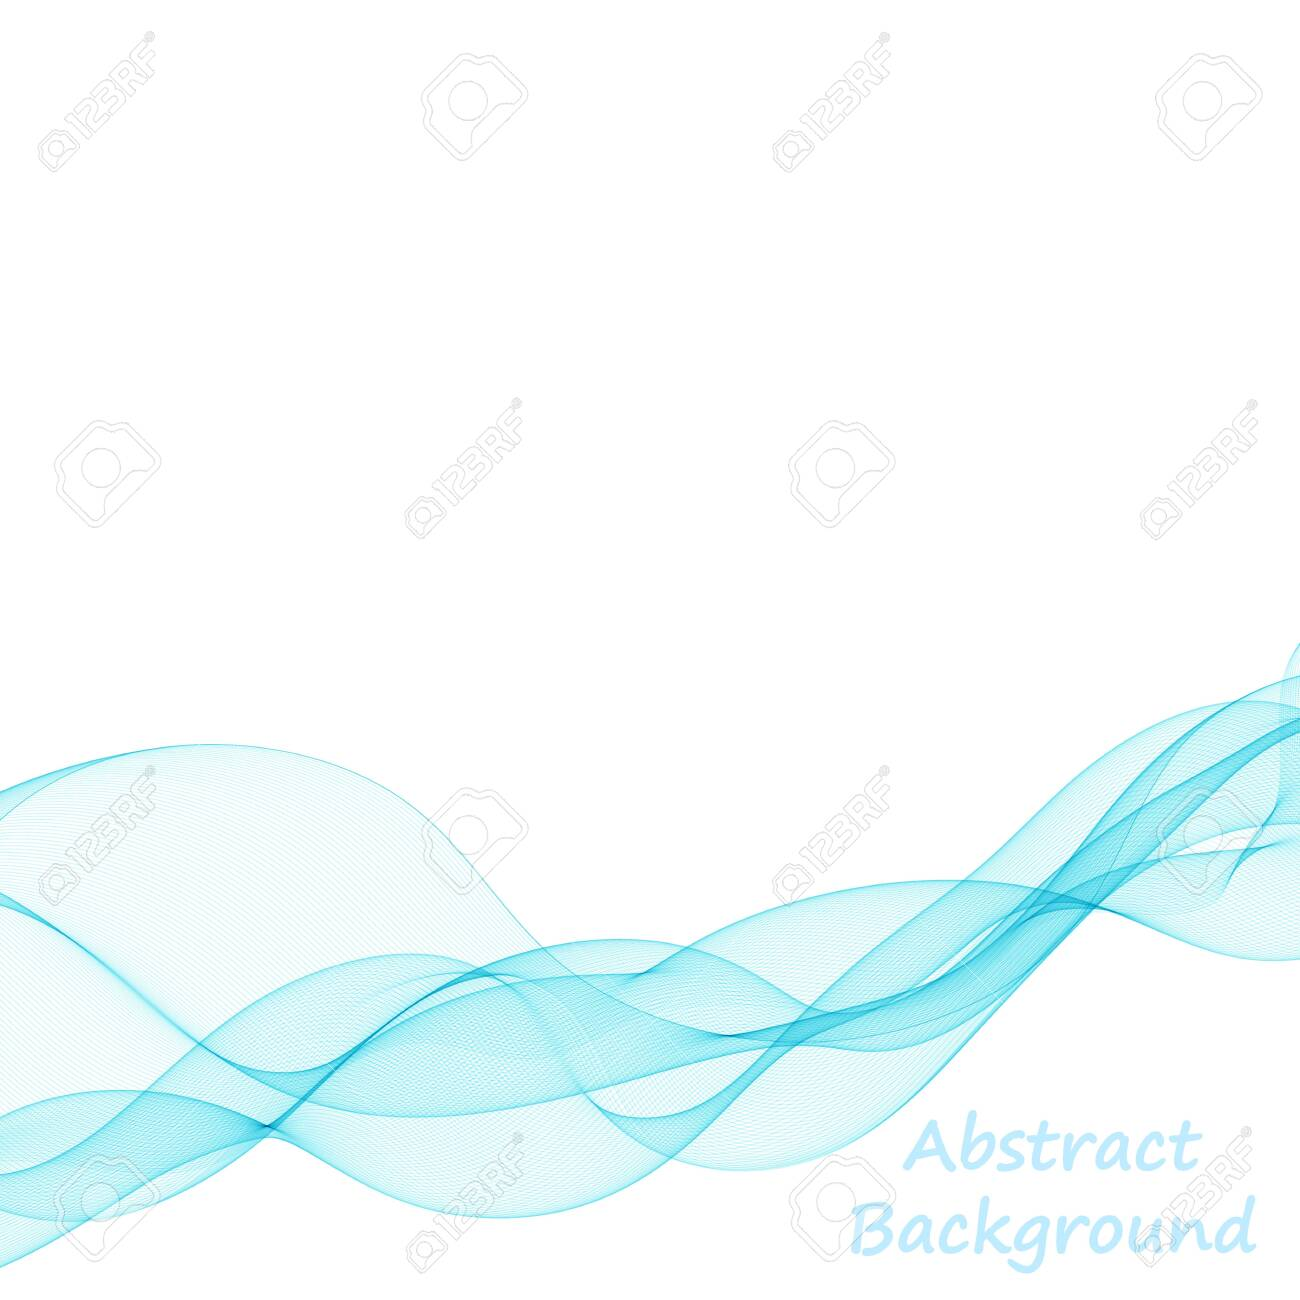 abstract vector background. colorful wave - 143894972